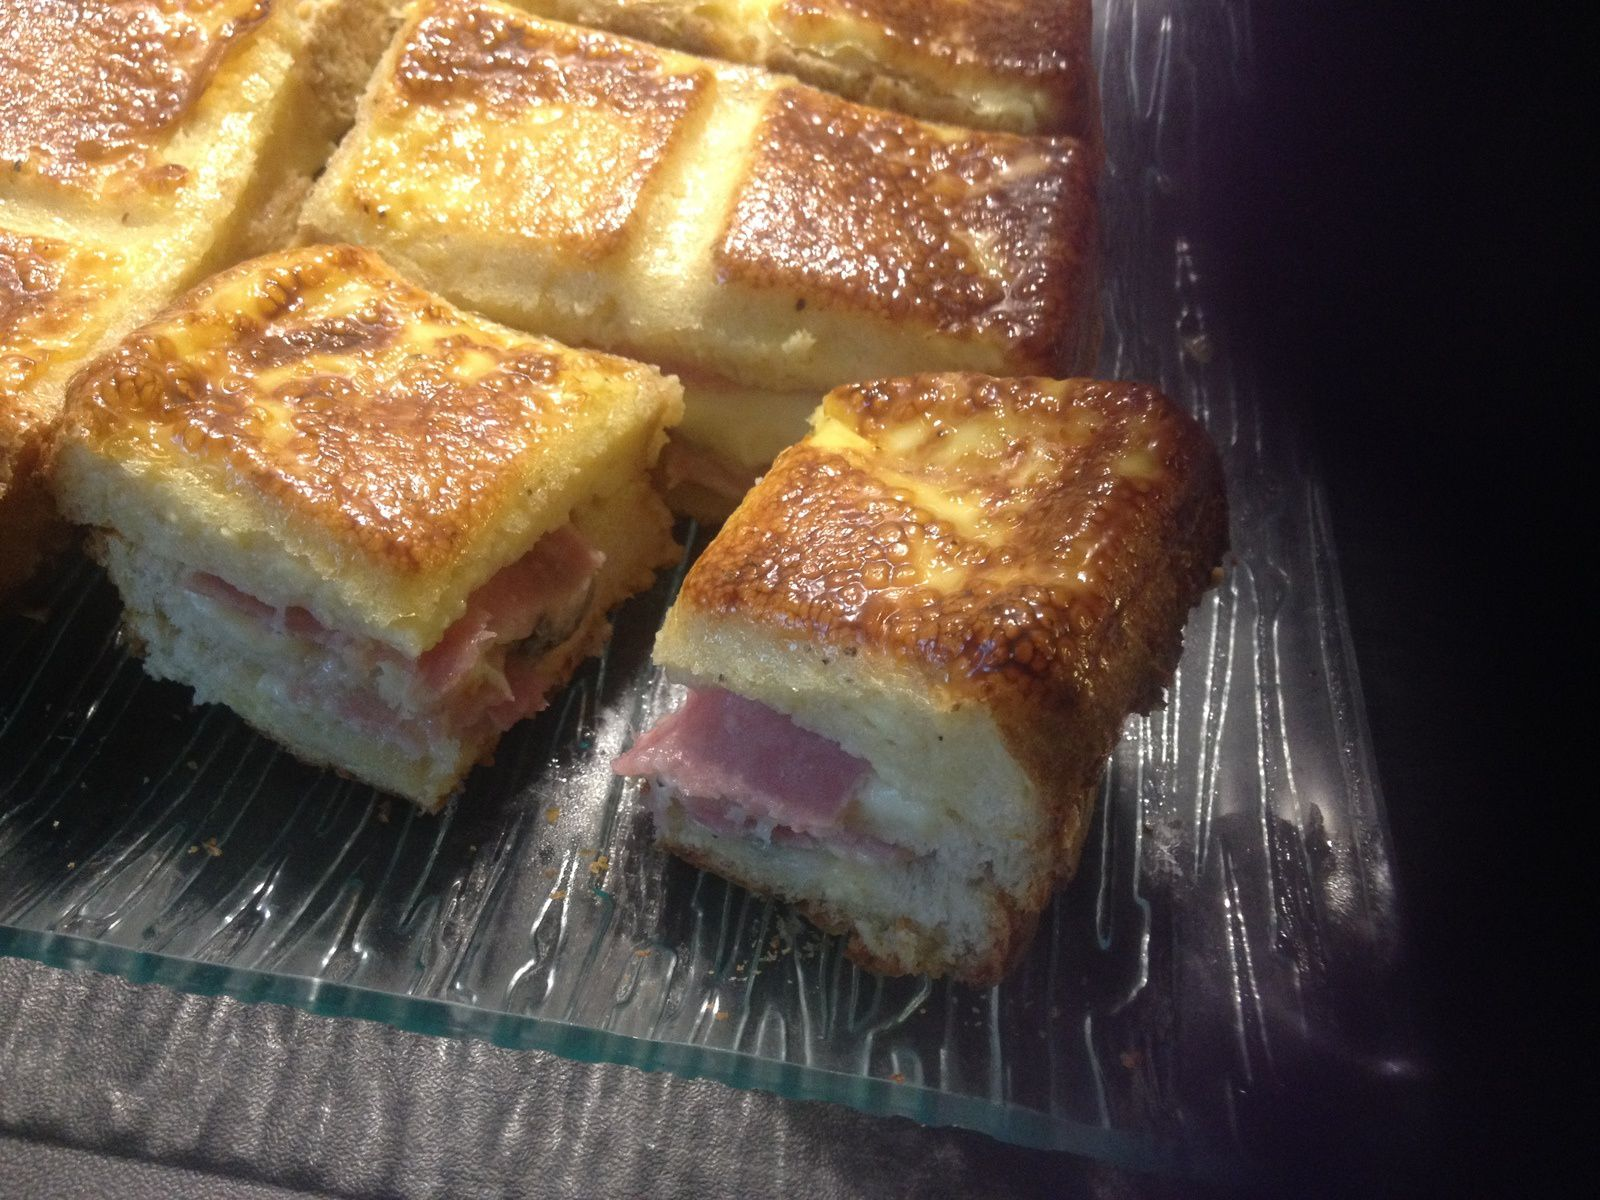 Croque tablette au roquefort